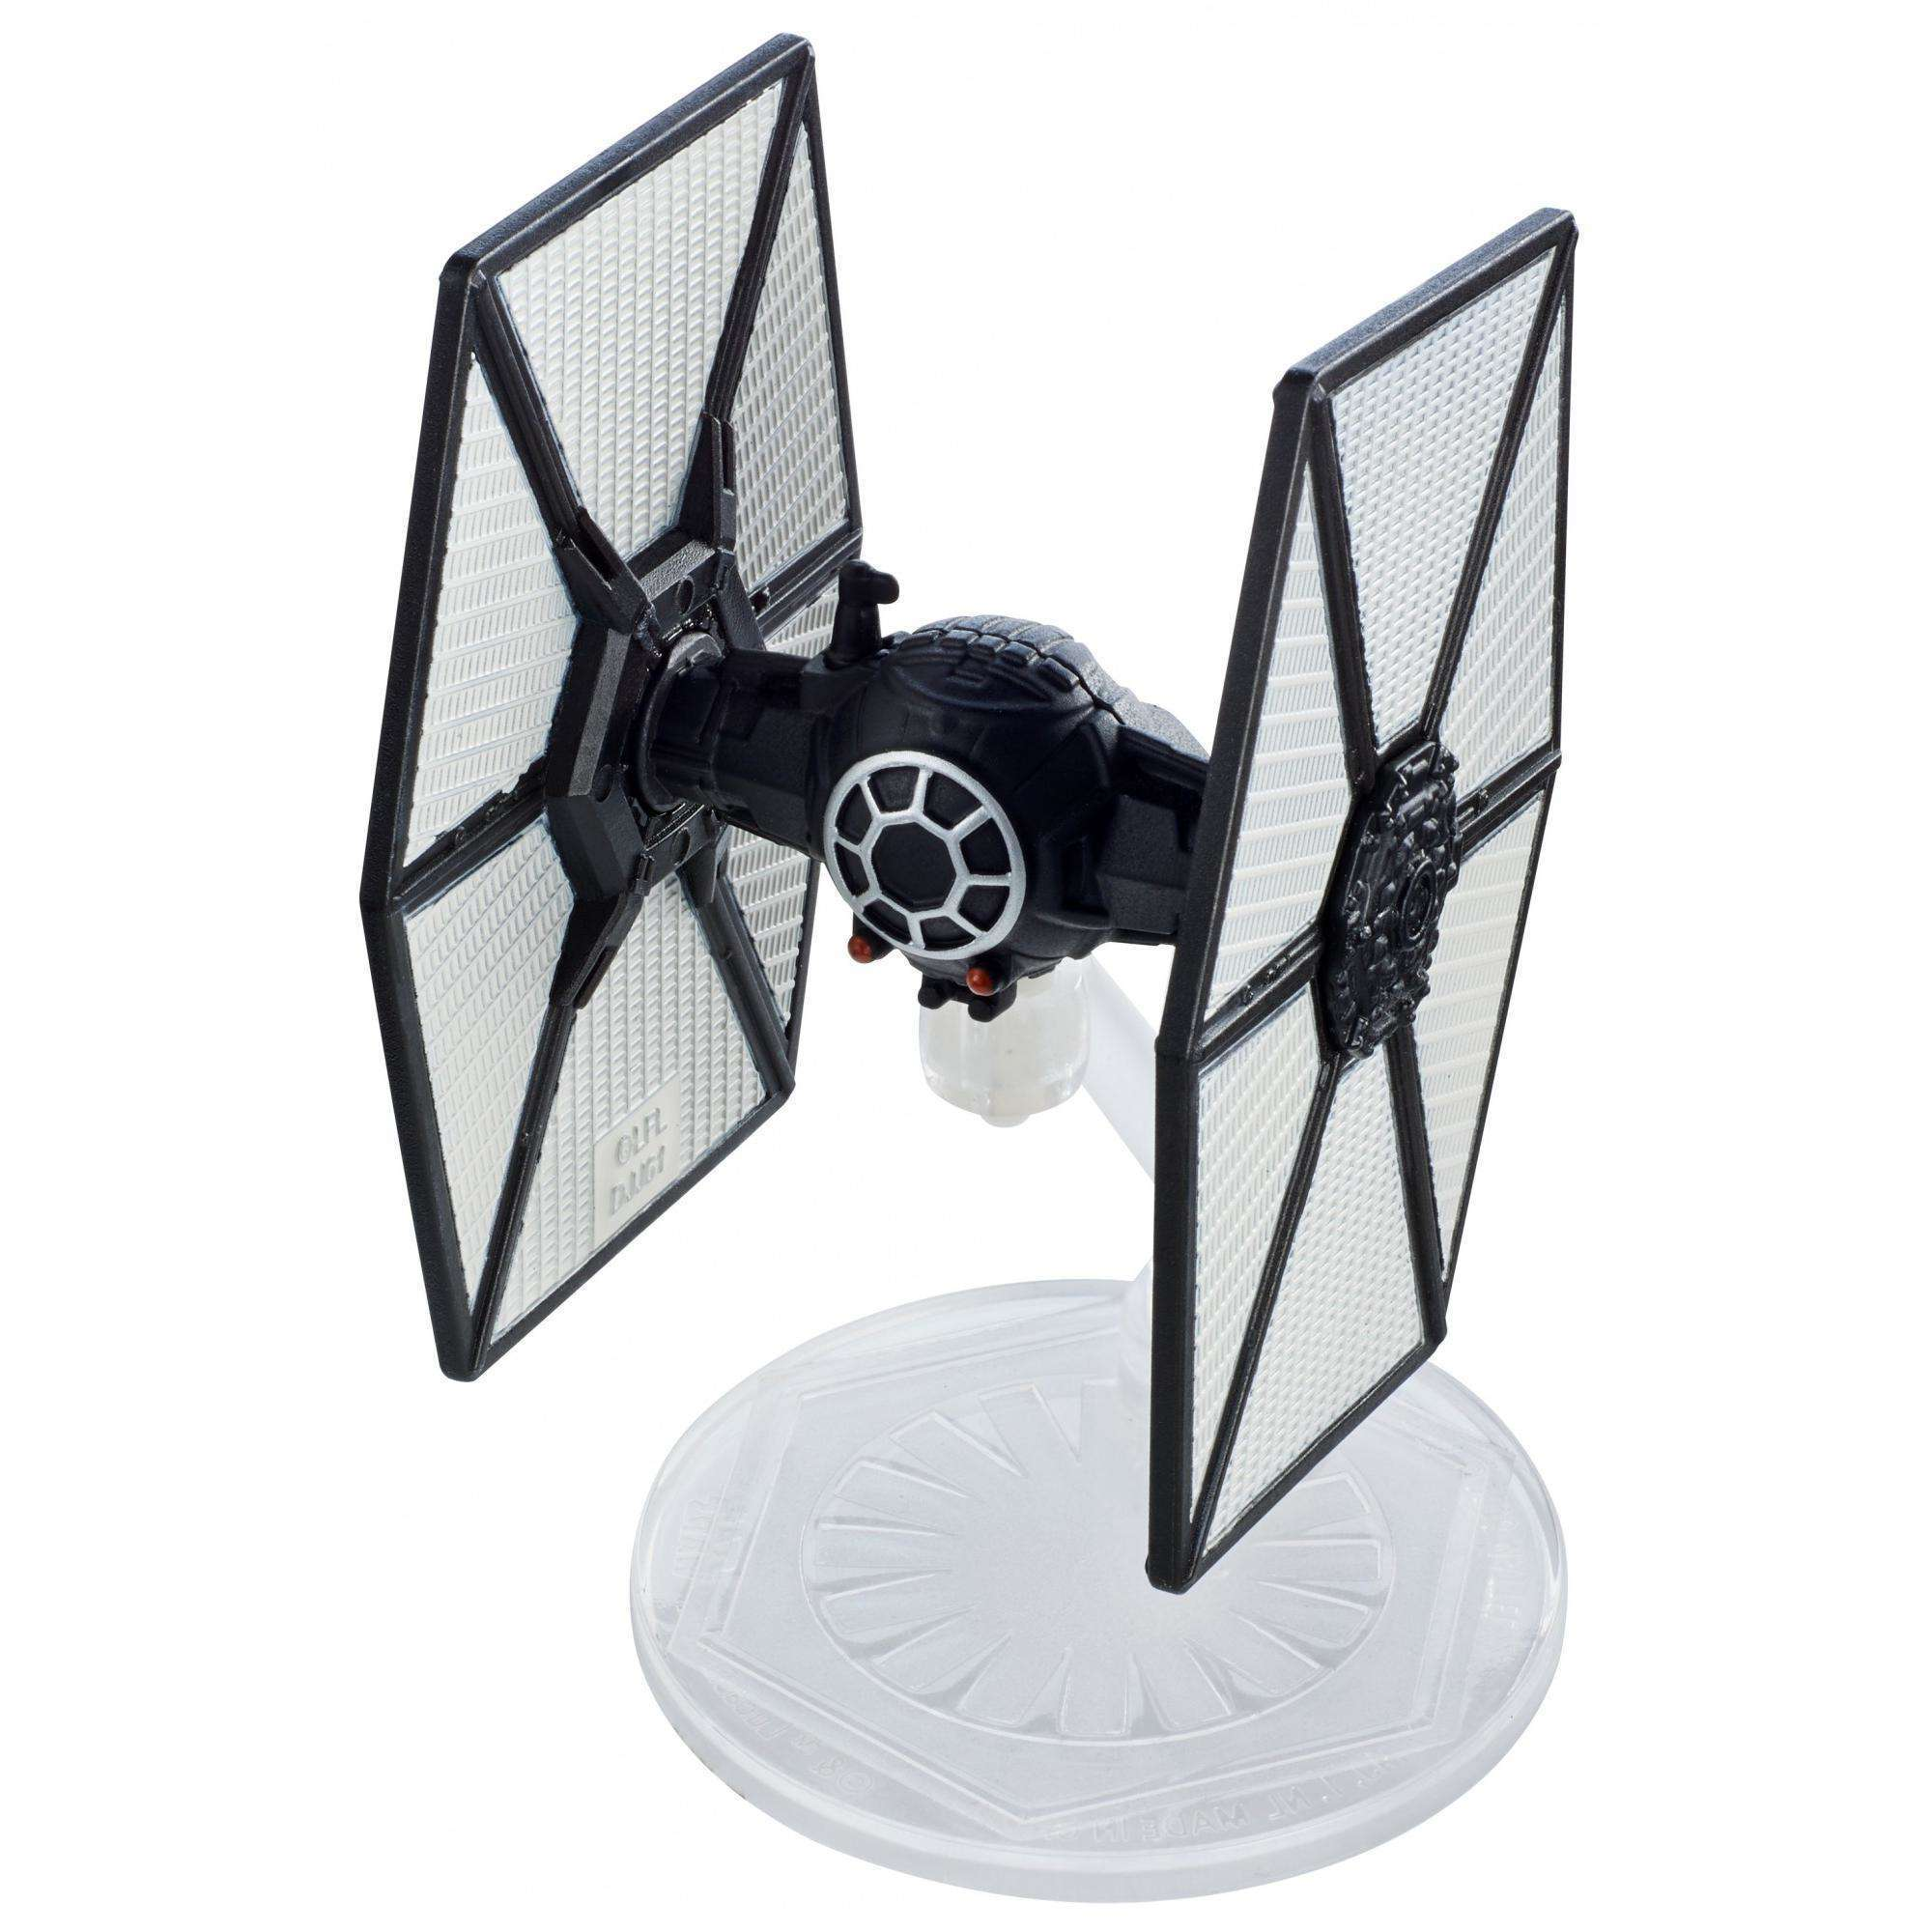 Hot Wheels Star Wars: The Last Jedi First Order TIE Fighter, Starship